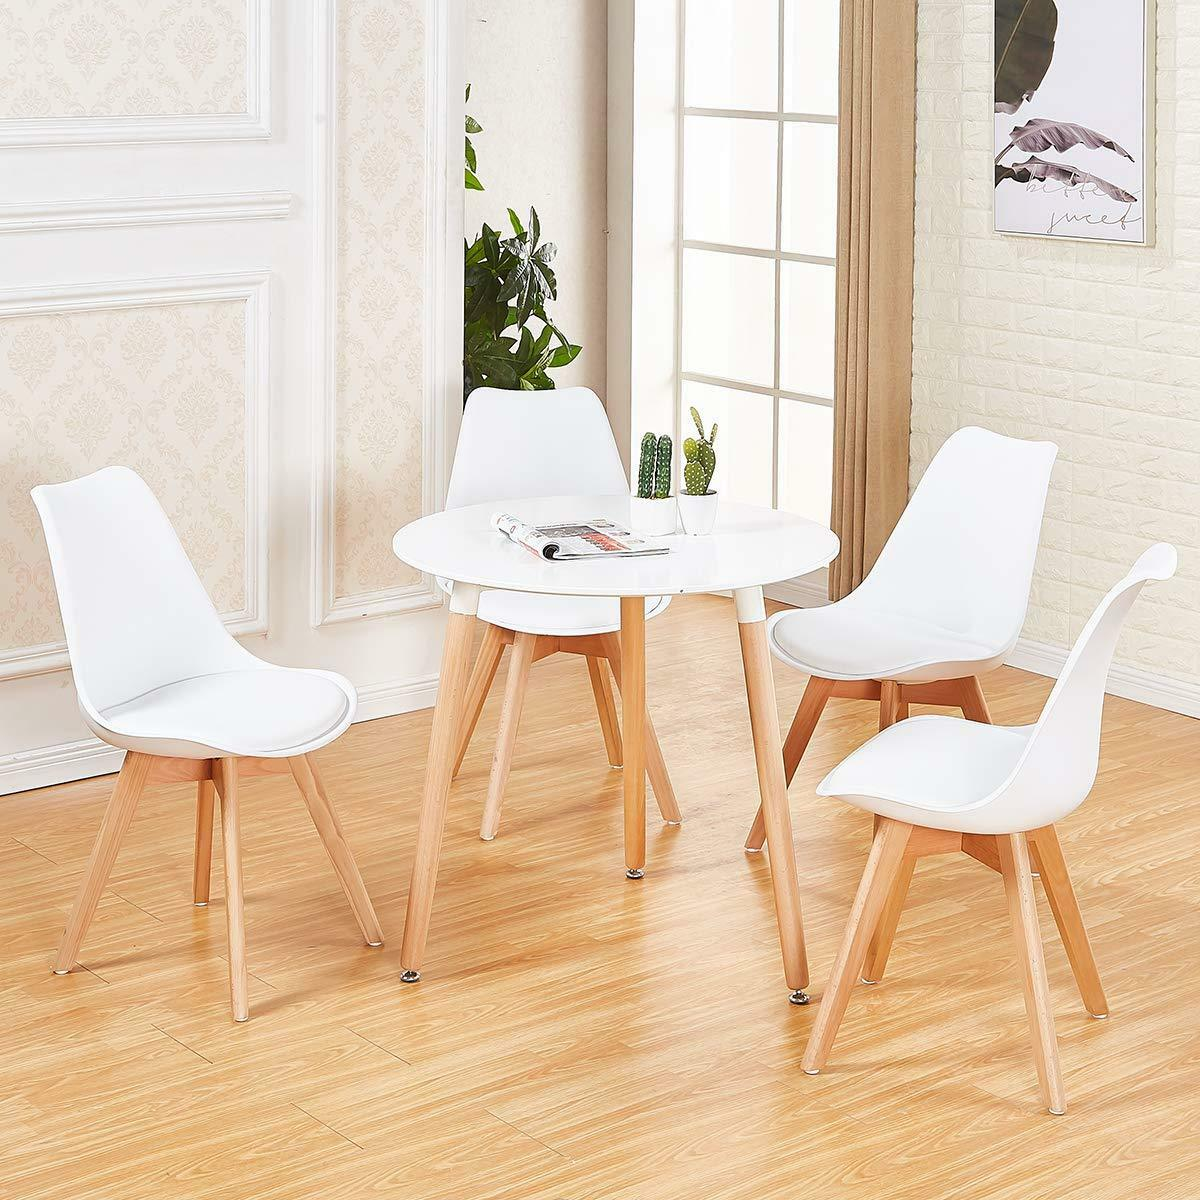 newest 6f8b1 8c1ca Details about White Round Dining Table And 4 Retro Dining Chairs Solid Wood  For Small Kitchen